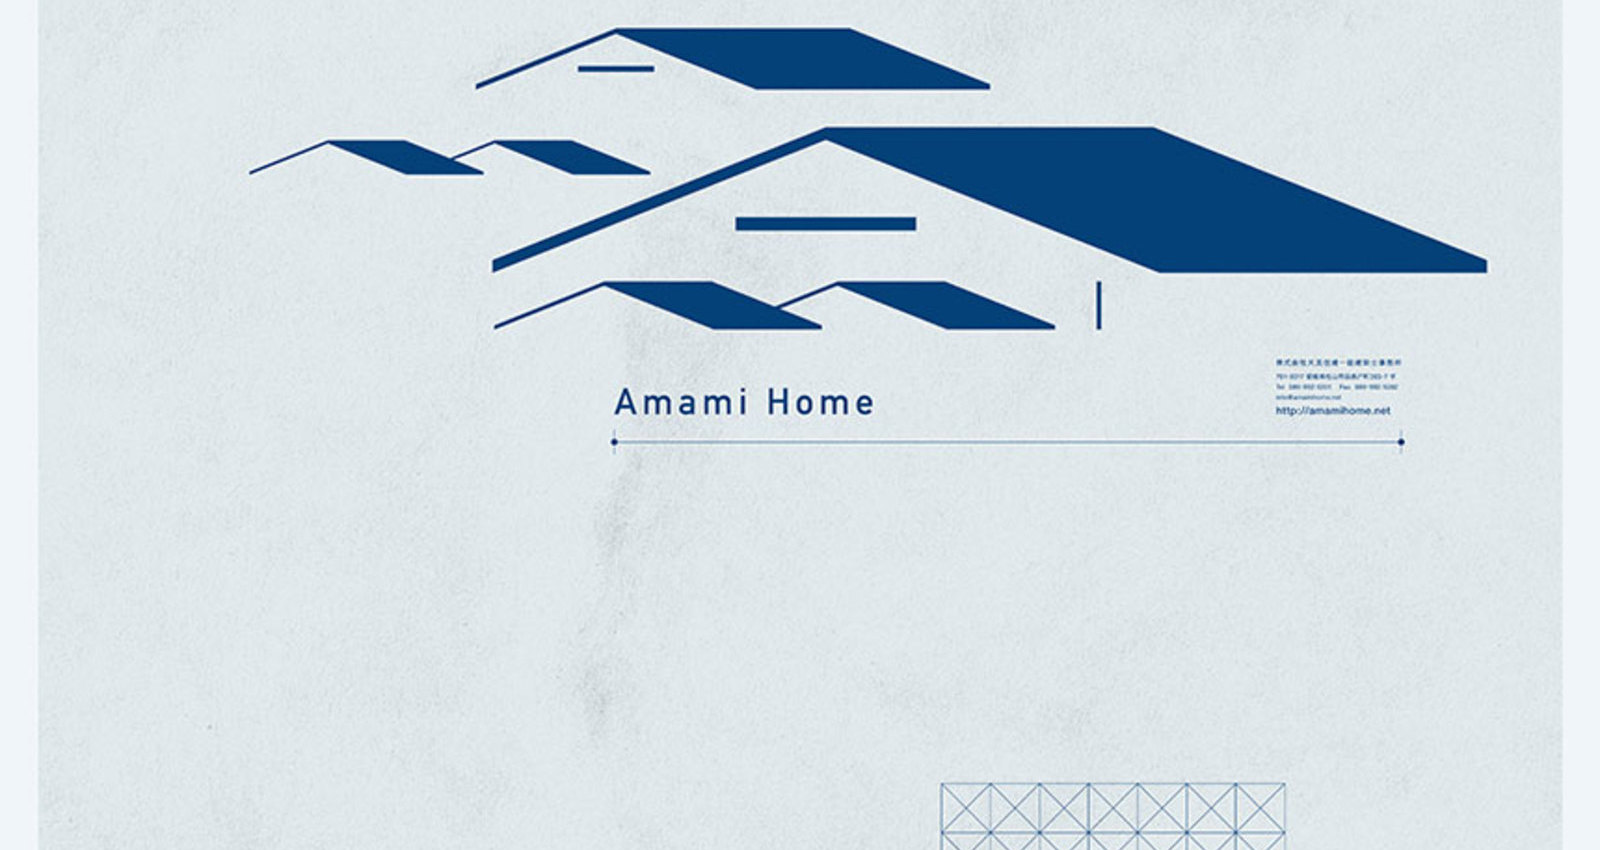 AMAMI HOME